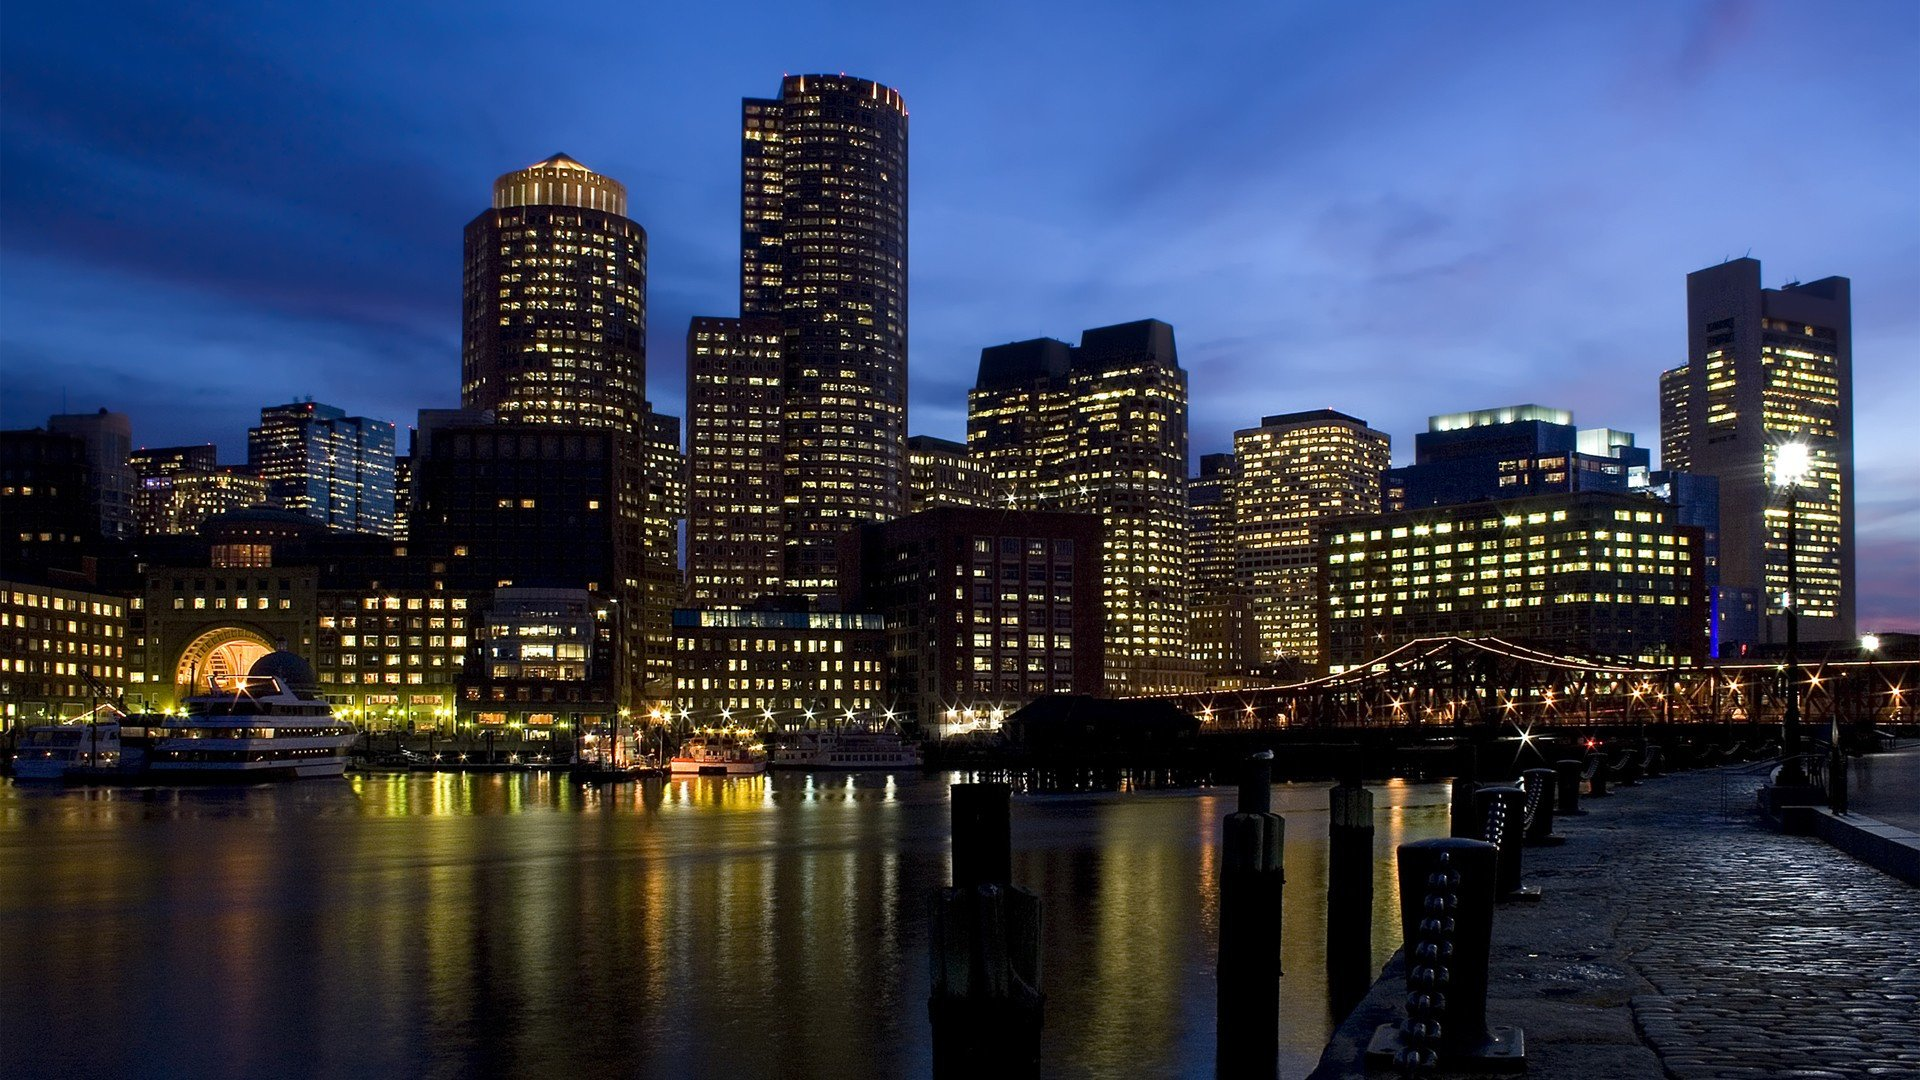 boston wallpapers photos and desktop backgrounds up to 8k